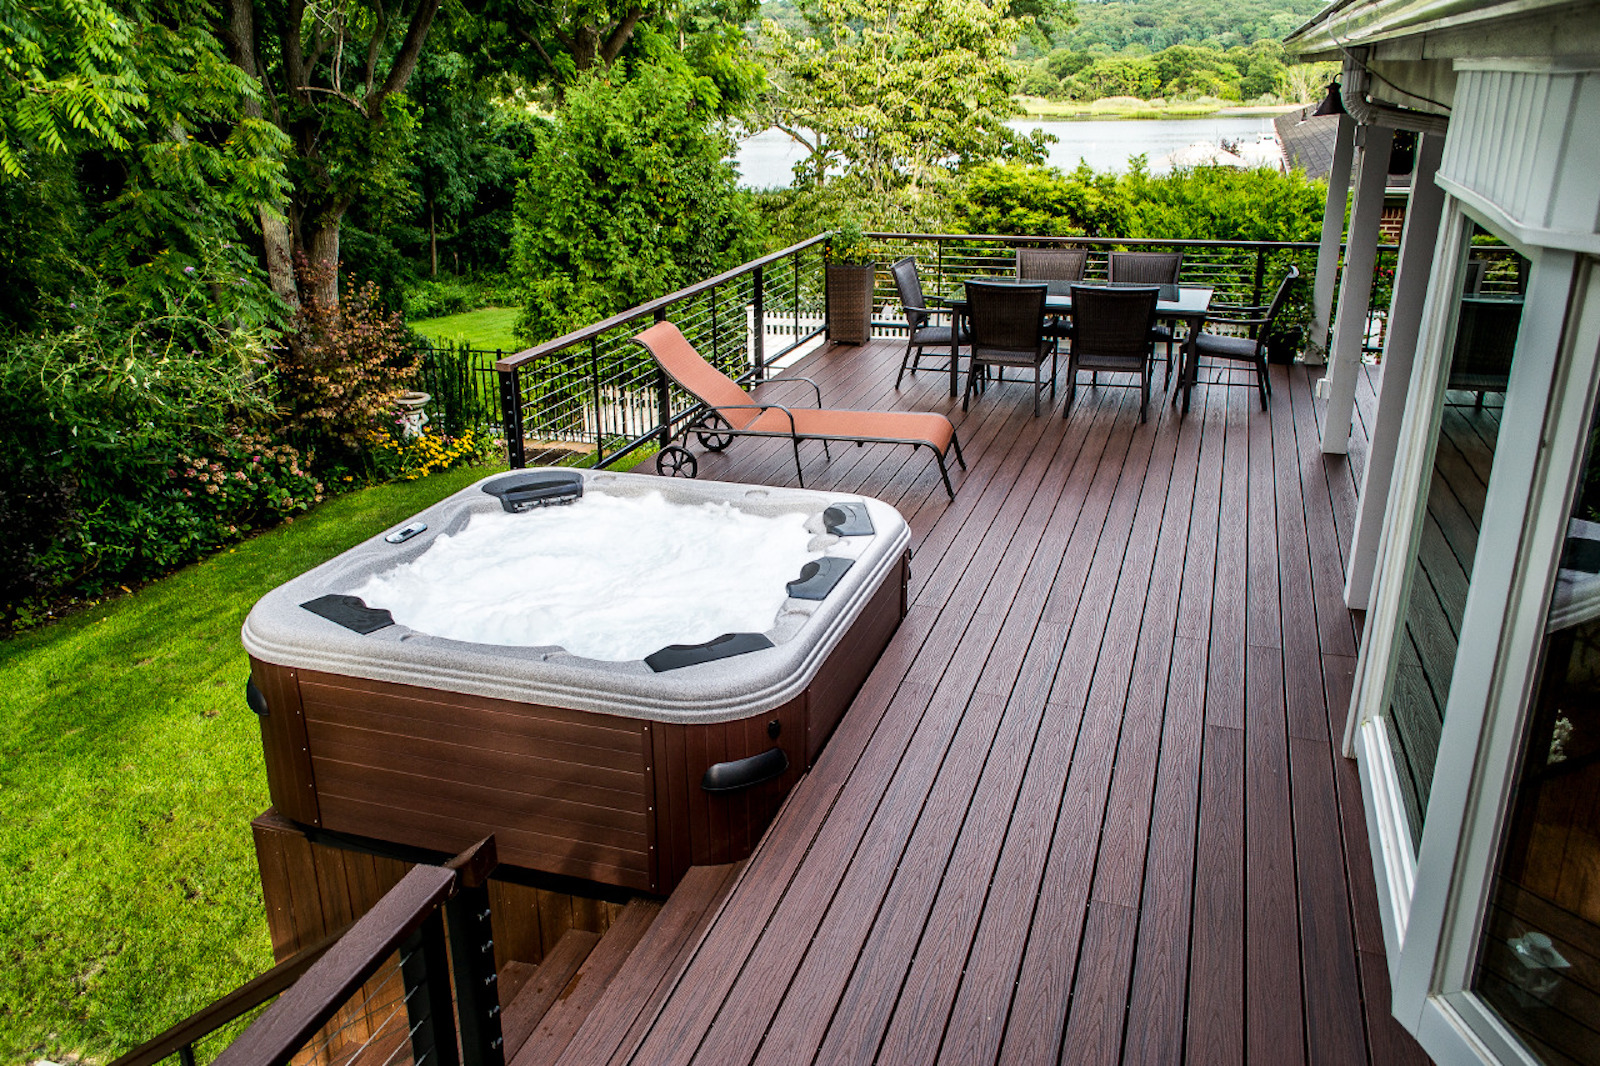 medium resolution of wood deck with hot tub overlooking lush green area